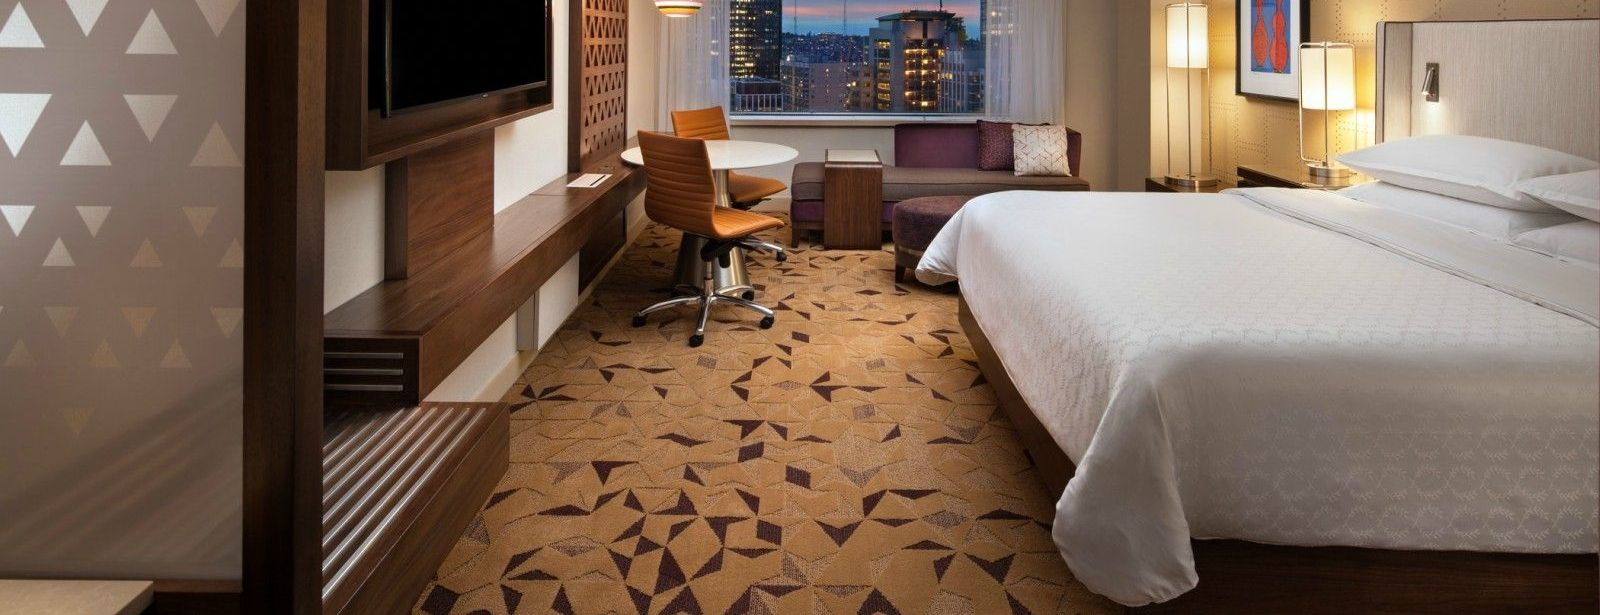 Sheraton Seattle Hotel - Club Room